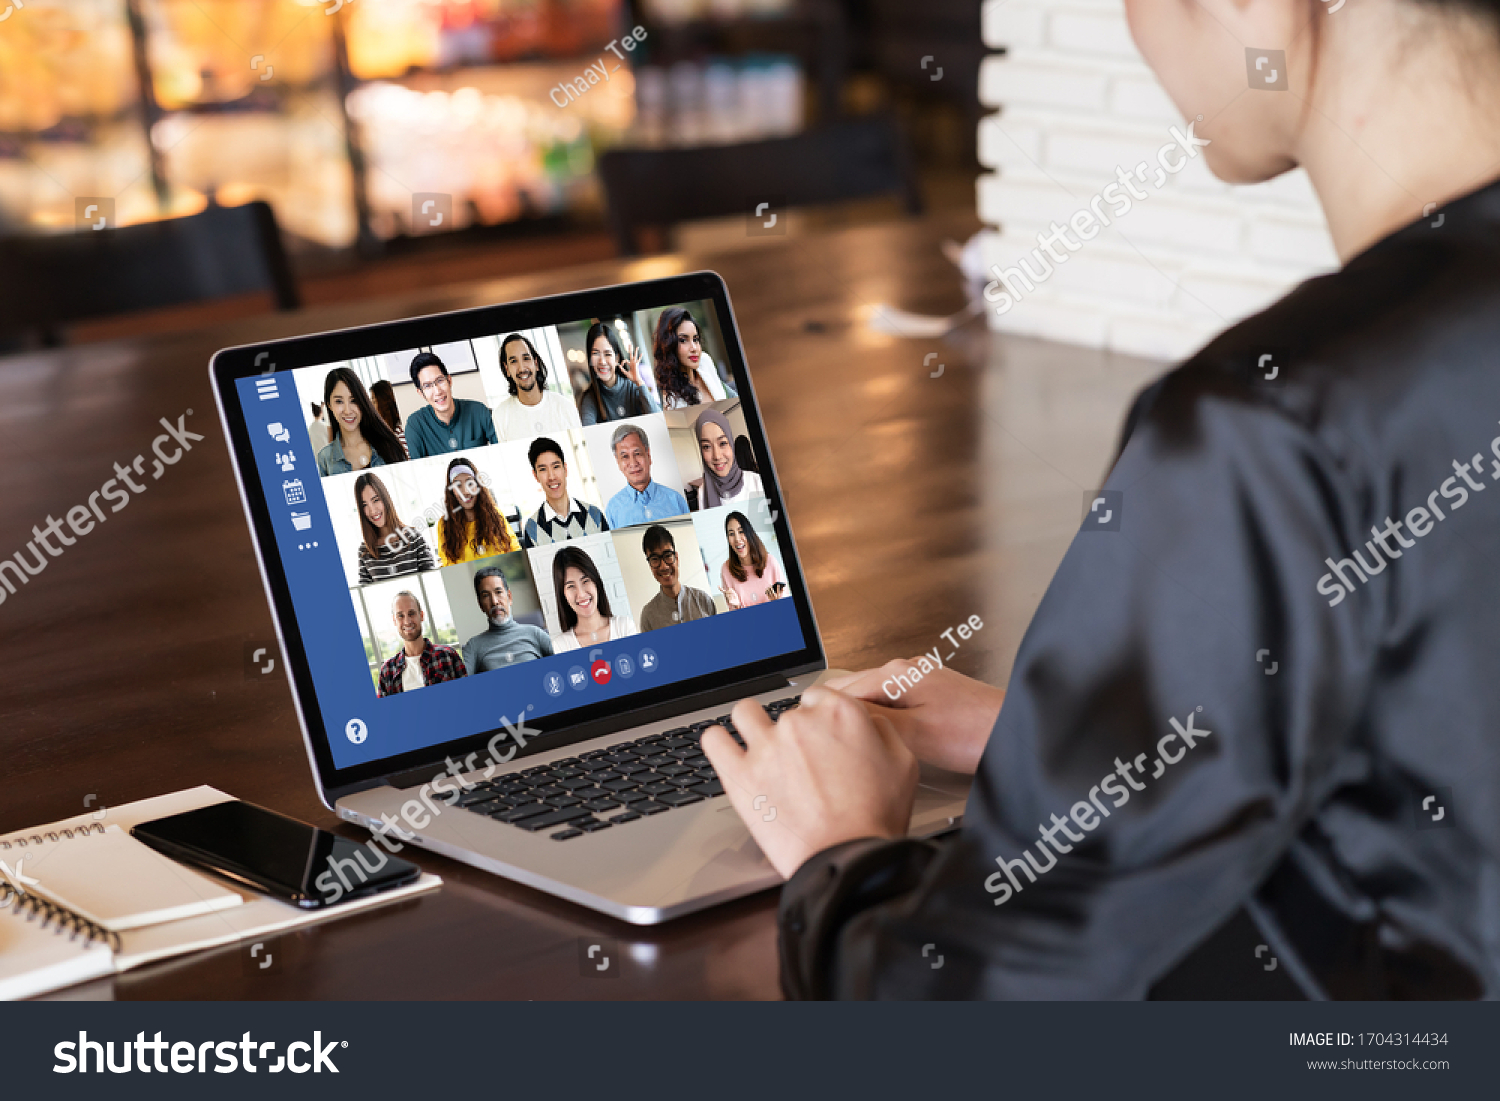 Back view of young asian business woman work remotely at home video conference remote call to corporate group. Meeting online,videocall, group discuss online concept with screen of teamwork on laptop. #1704314434